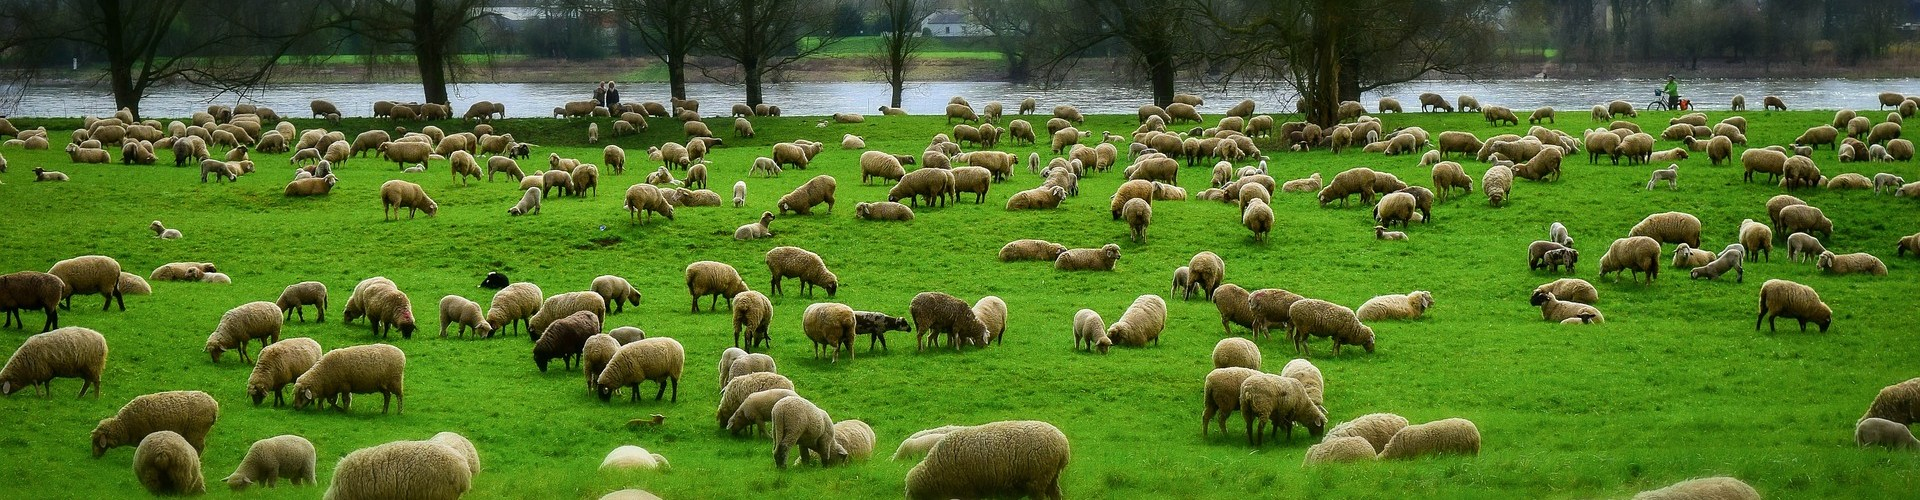 herd of sheep in field with river in background